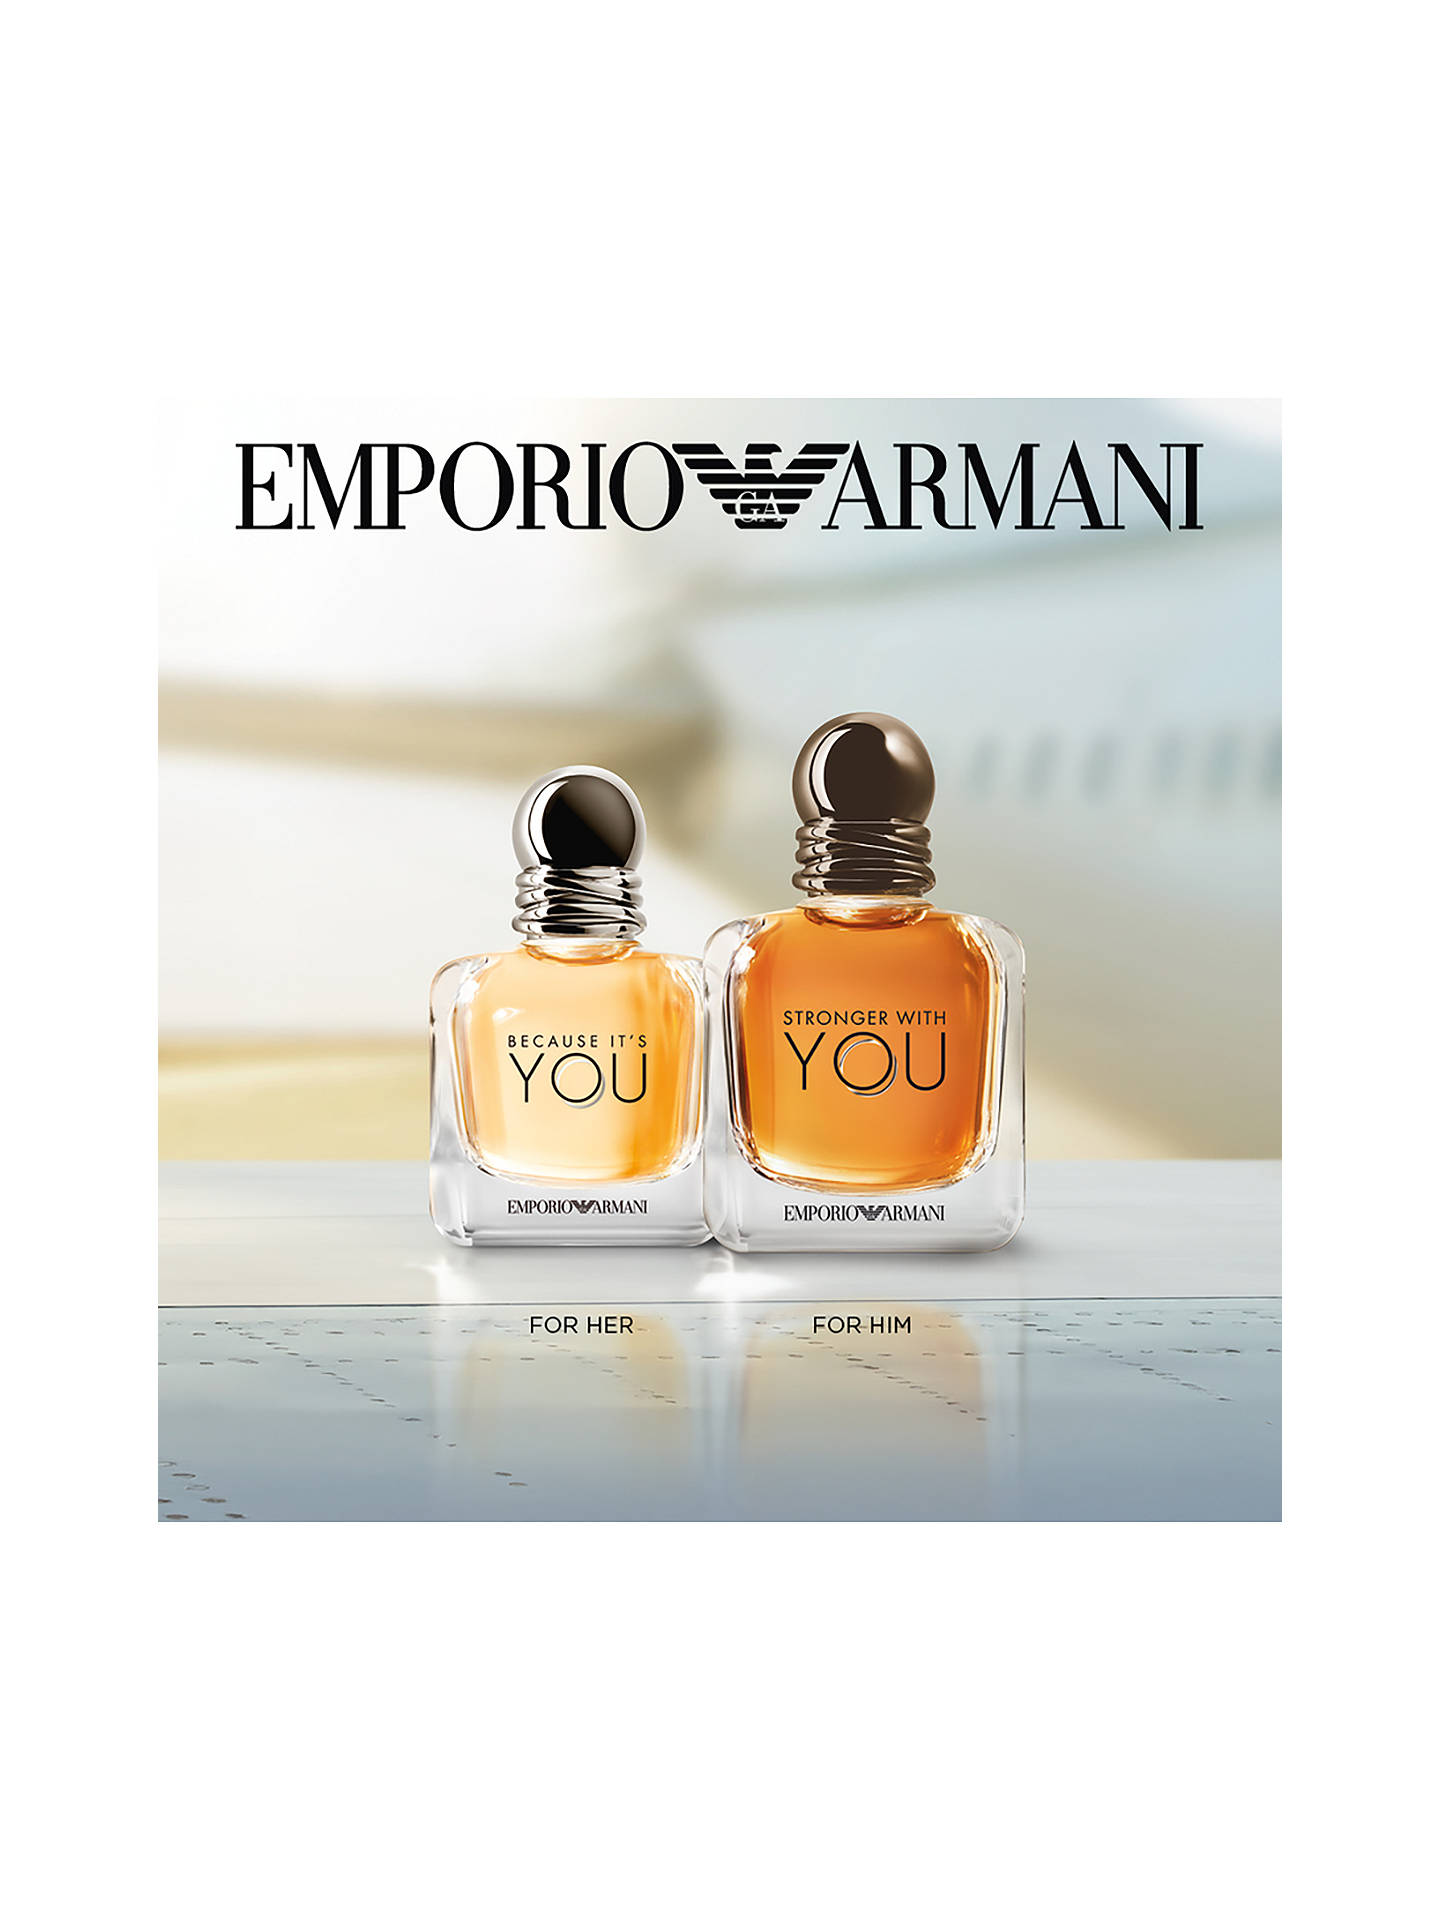 Emporio Armani Because Its You Eau De Parfum At John Lewis Partners